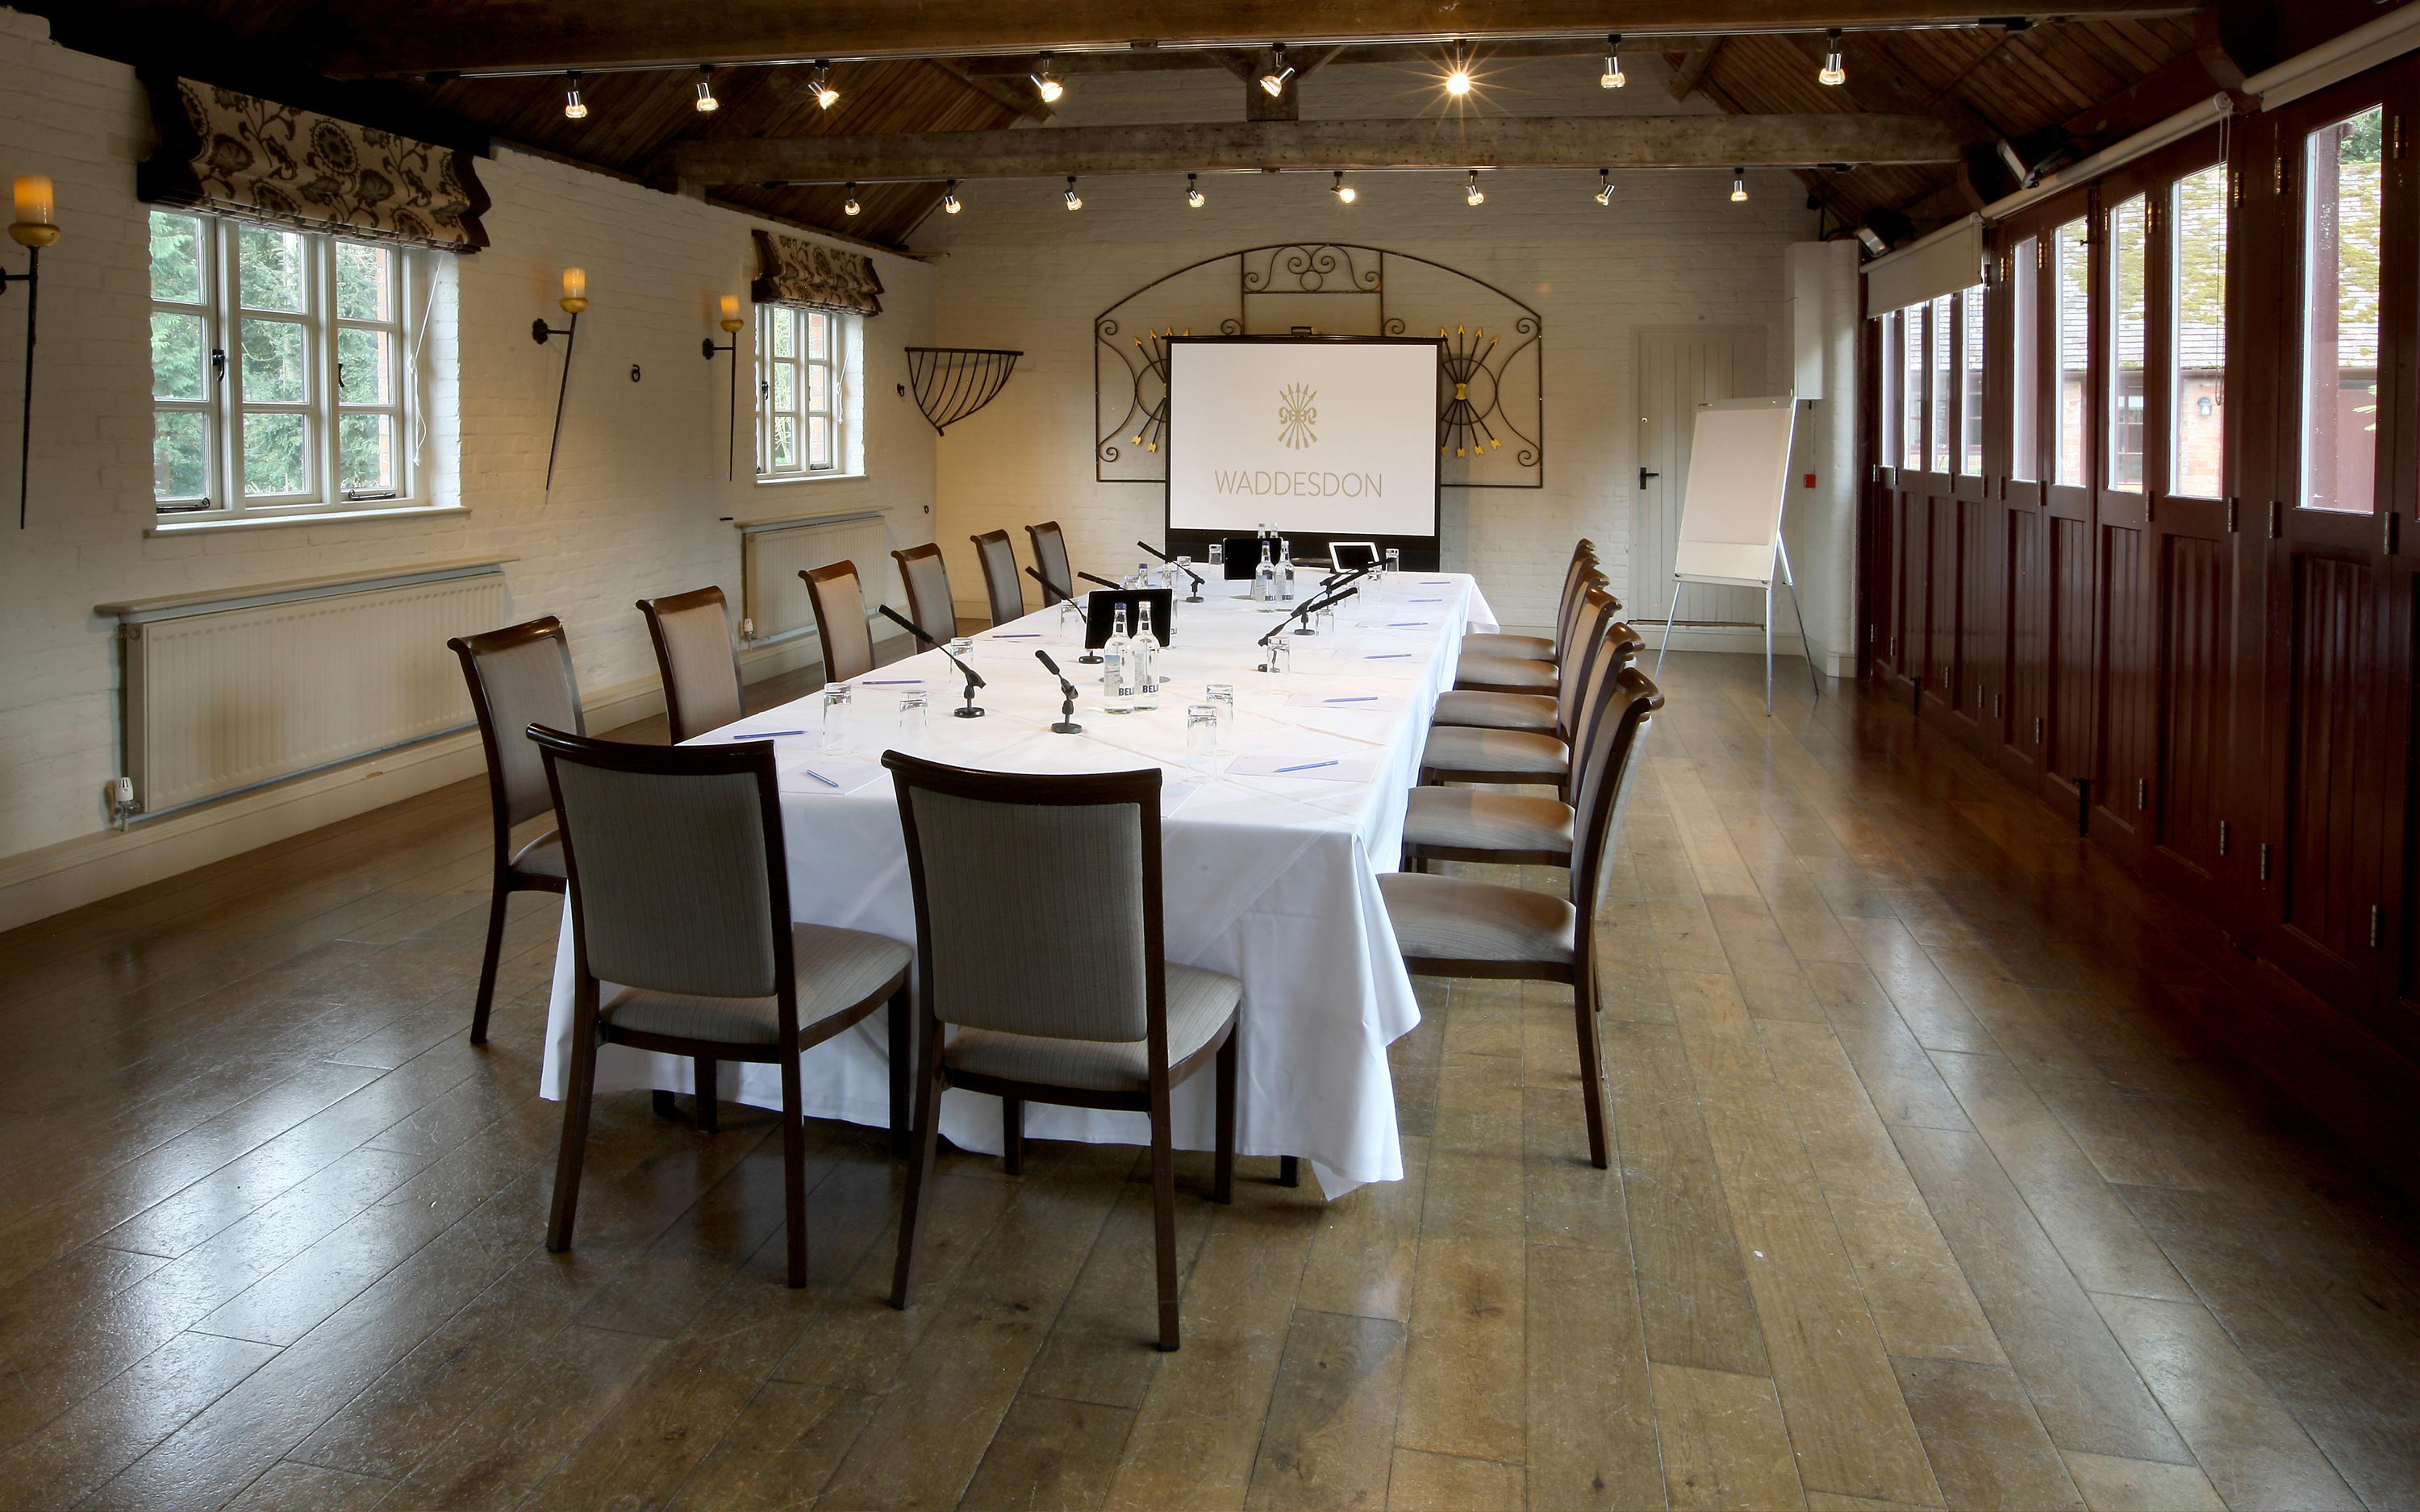 Old Coach House set up for a meeting